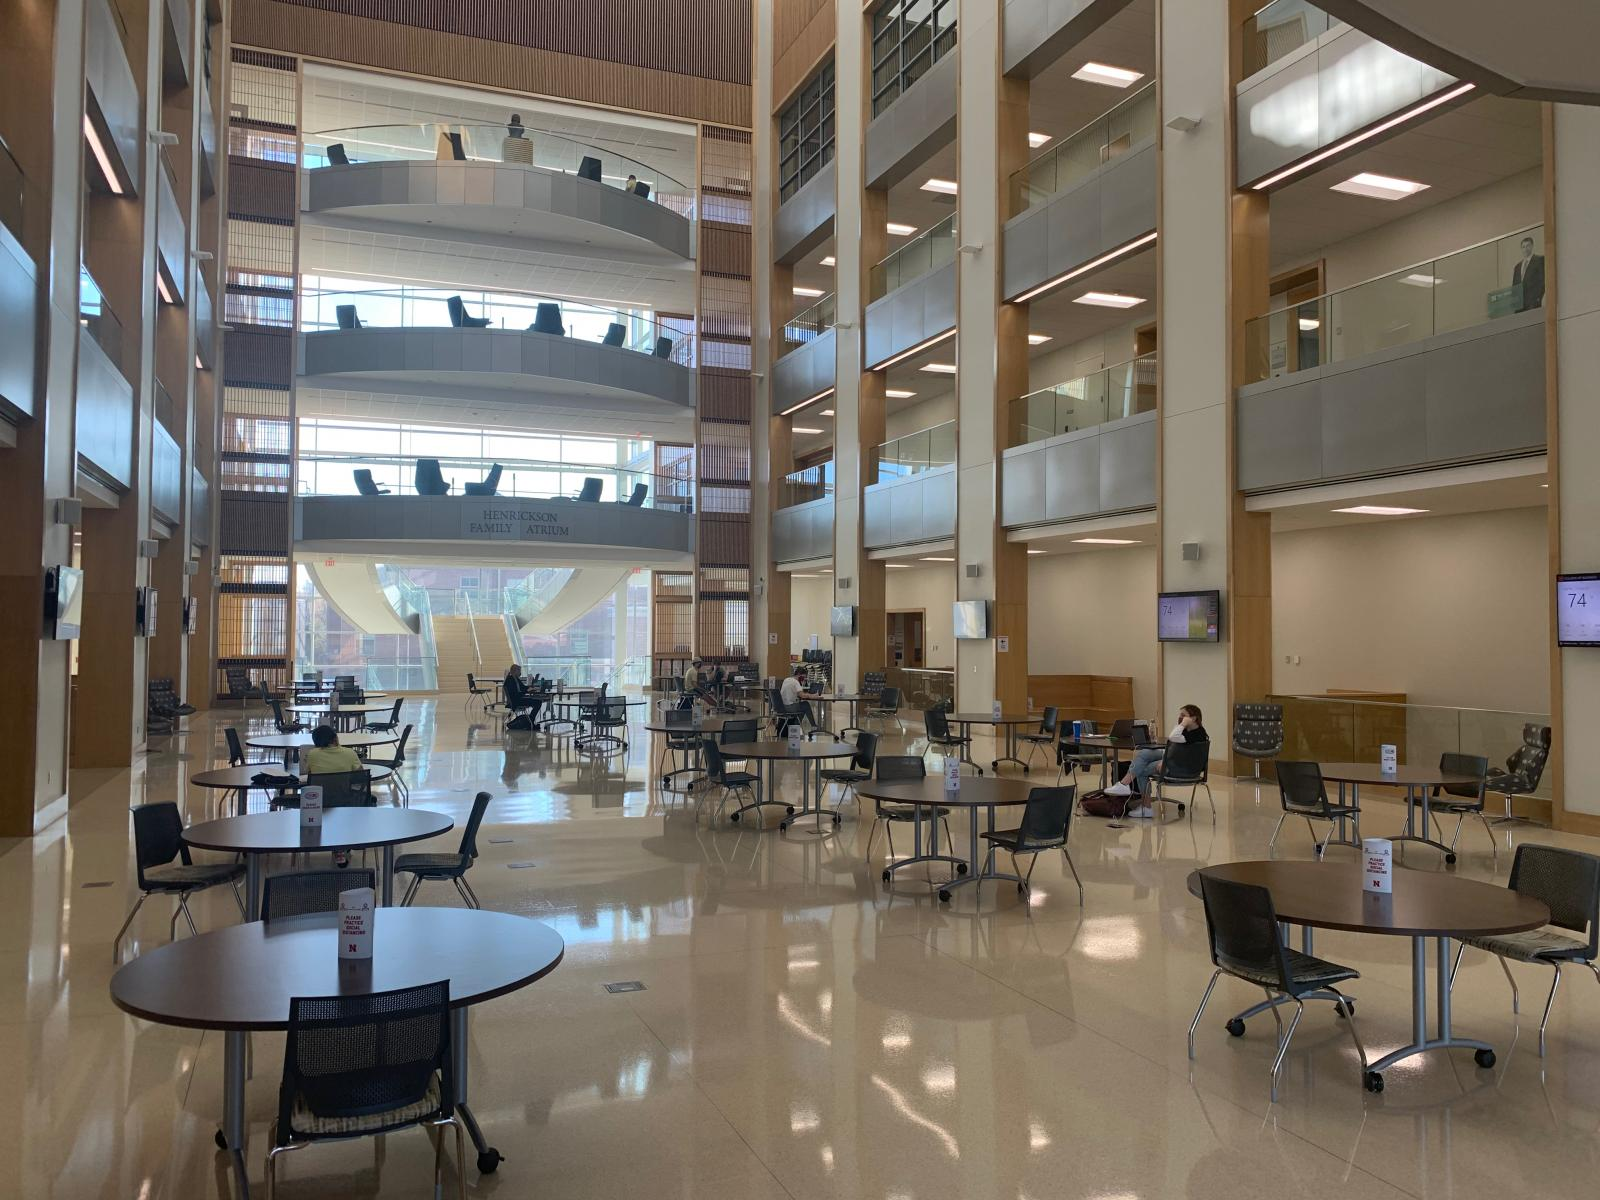 Great hall in the Howard Hawkes College of Business.